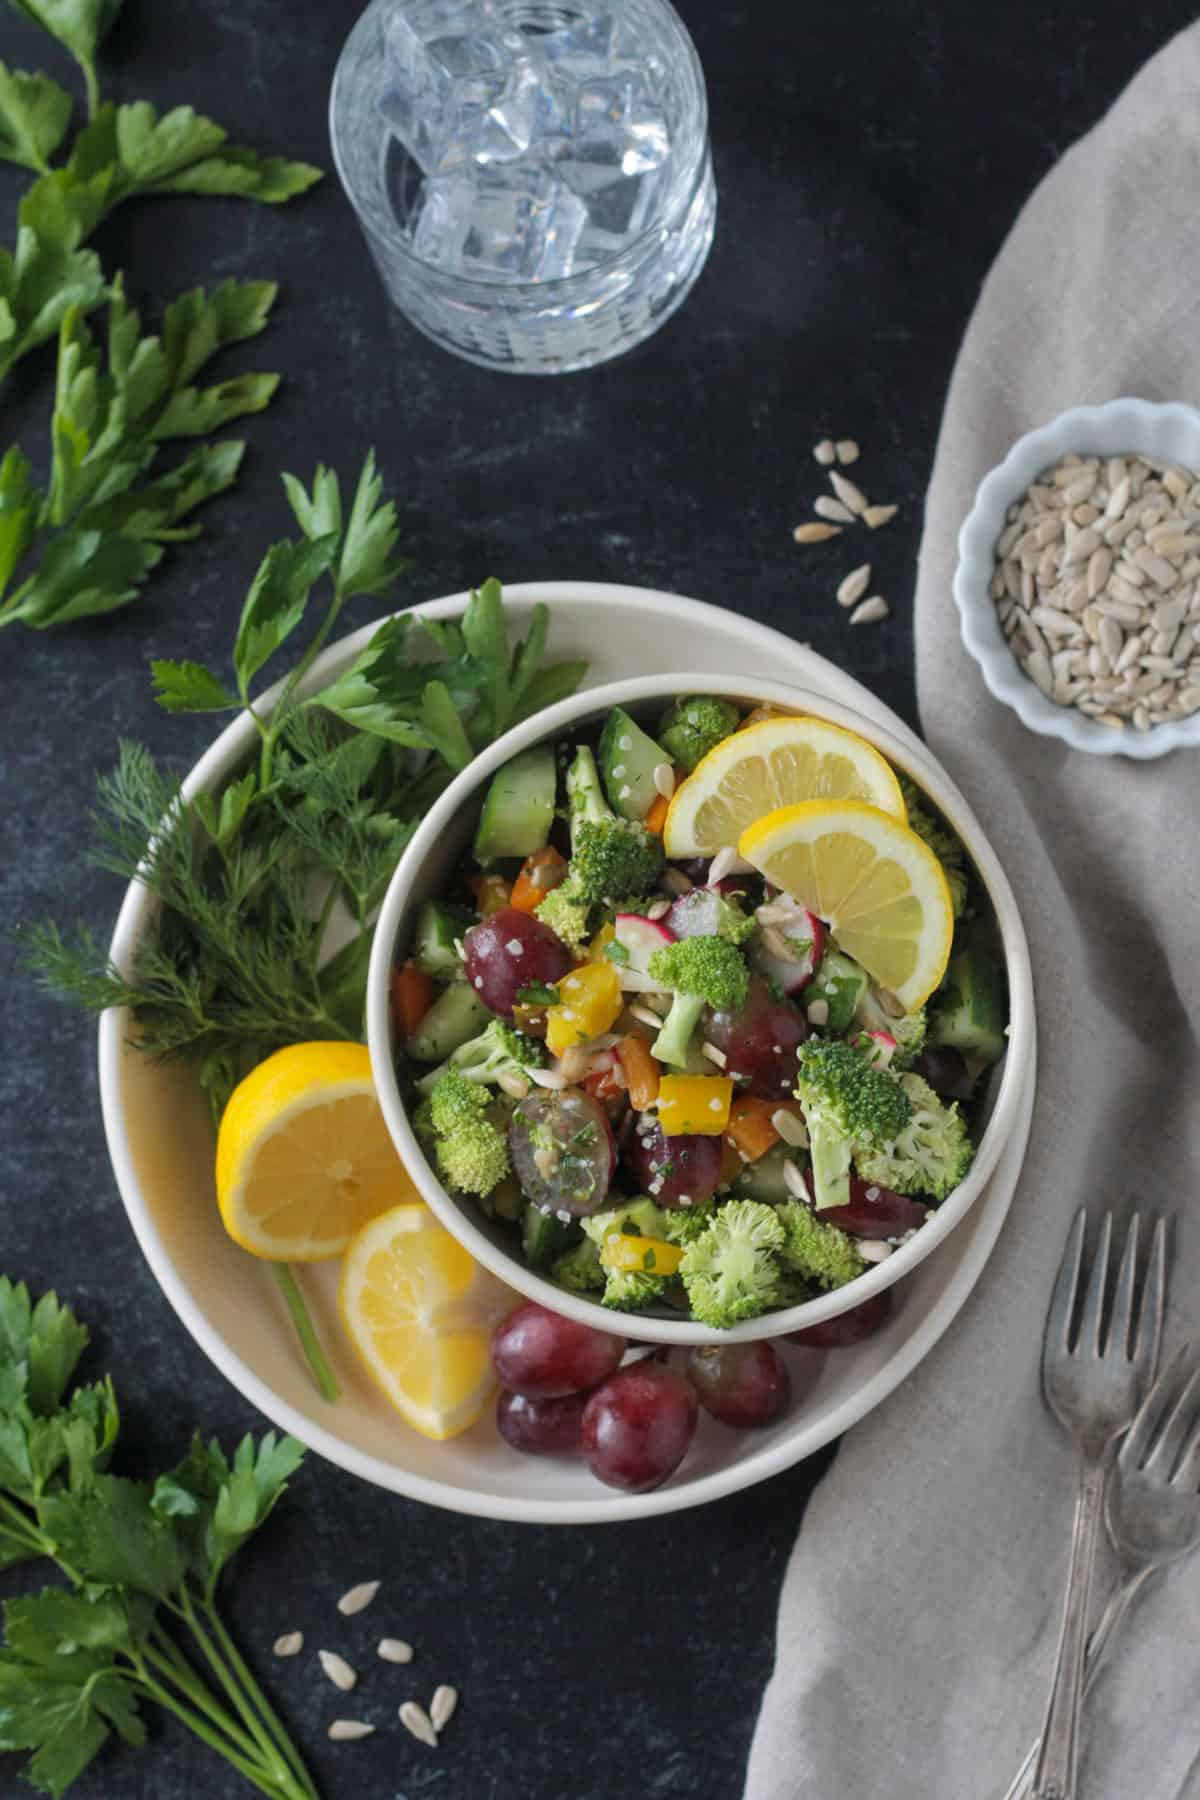 Bowl of salad on a plate with fresh herbs, lemon wedges, and a bunch of red grapes.